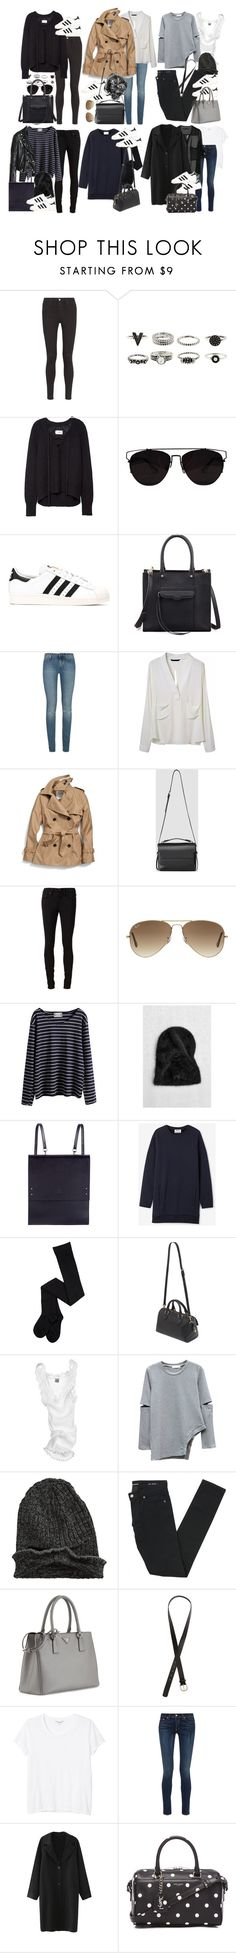 """""""Inspired fall post with superstar Adidas"""" by nikka-phillips ❤ liked on Polyvore featuring AG Adriano Goldschmied, Retrò, adidas, Rebecca Minkoff, Yves Saint Laurent, Coach, AllSaints, rag & bone/JEAN, Ray-Ban and Burberry"""